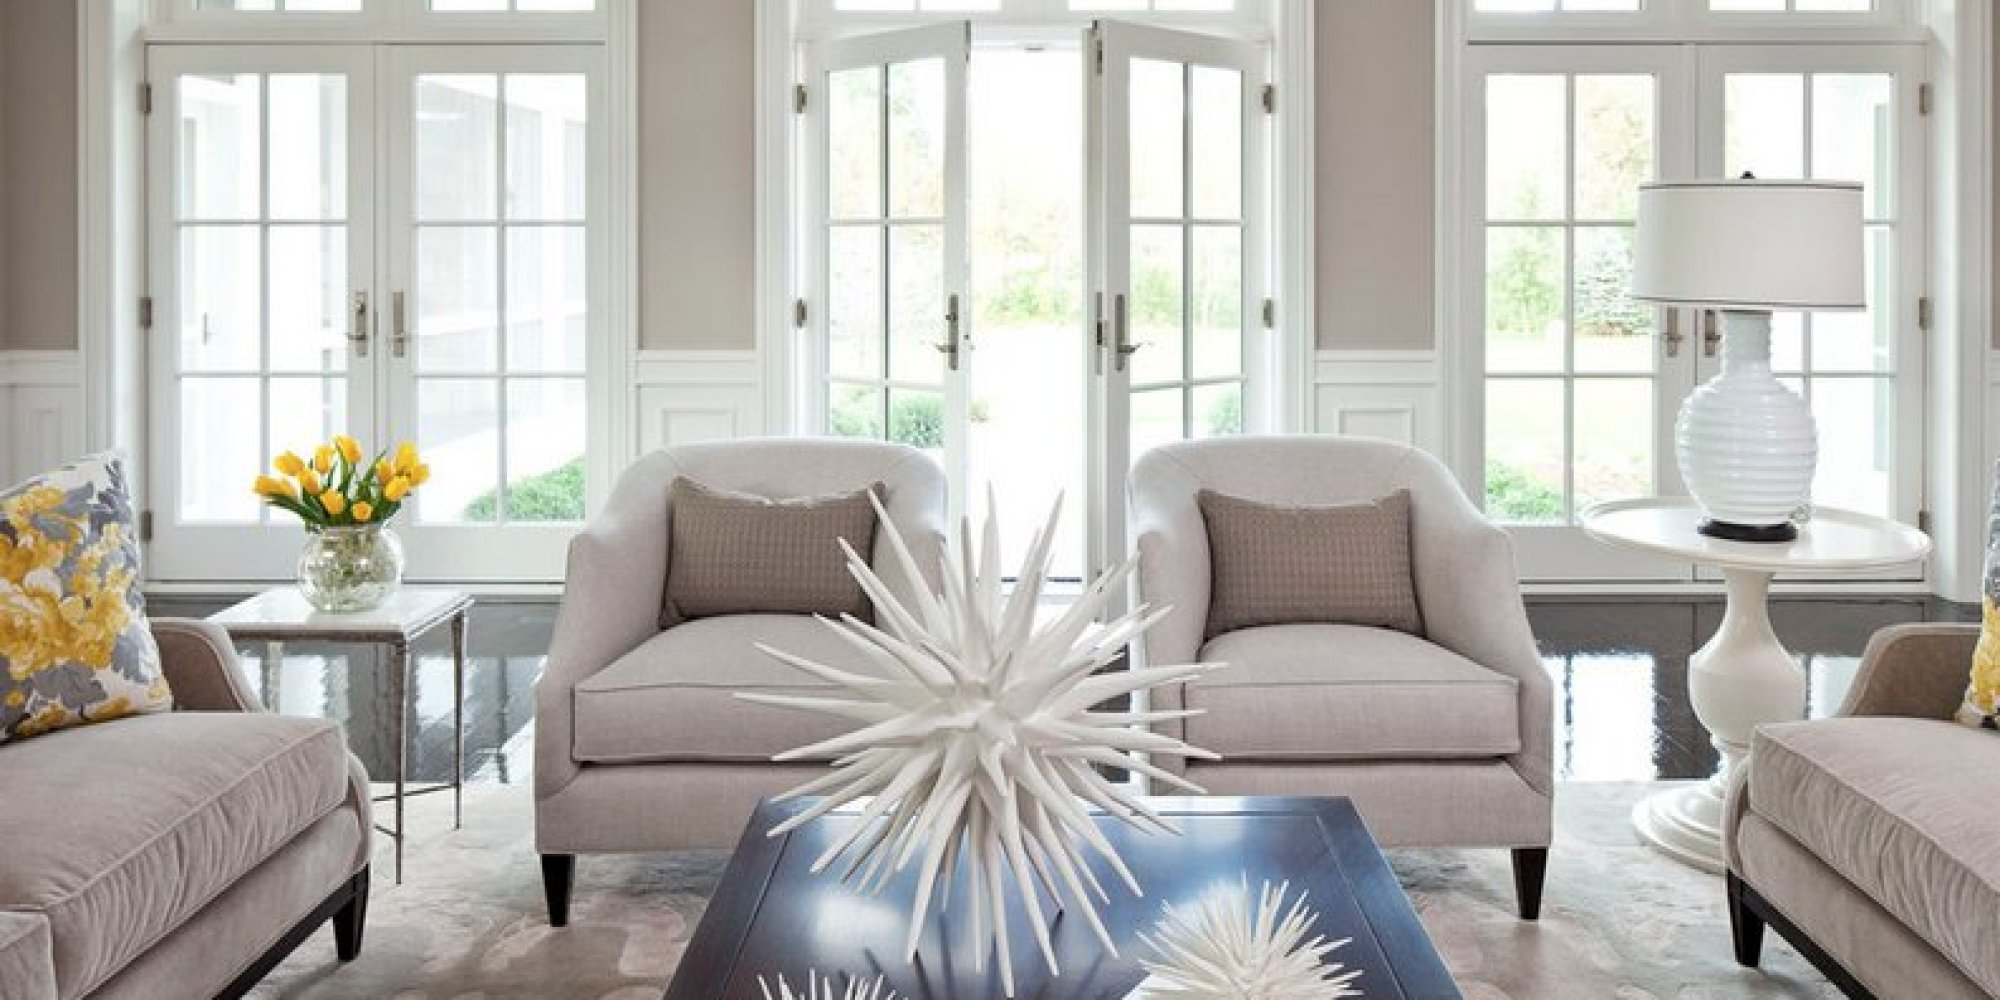 Decor Paint Colors For Home Interiors Interiors Living Room Home ...